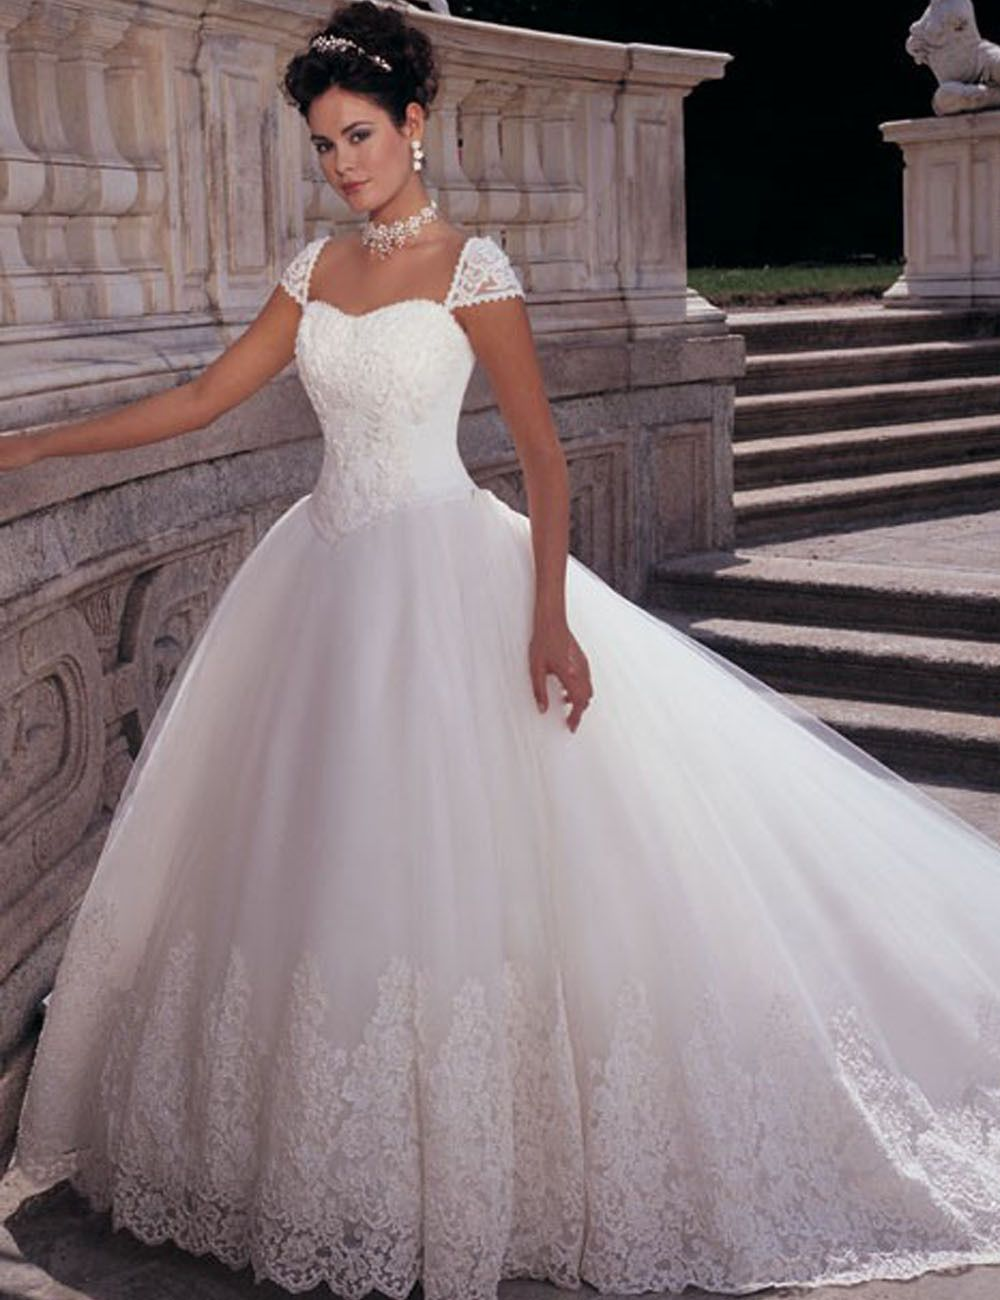 Pinterest Dresses For Wedding Of Fairytale Wedding Dresses Google Search Disney Wedding